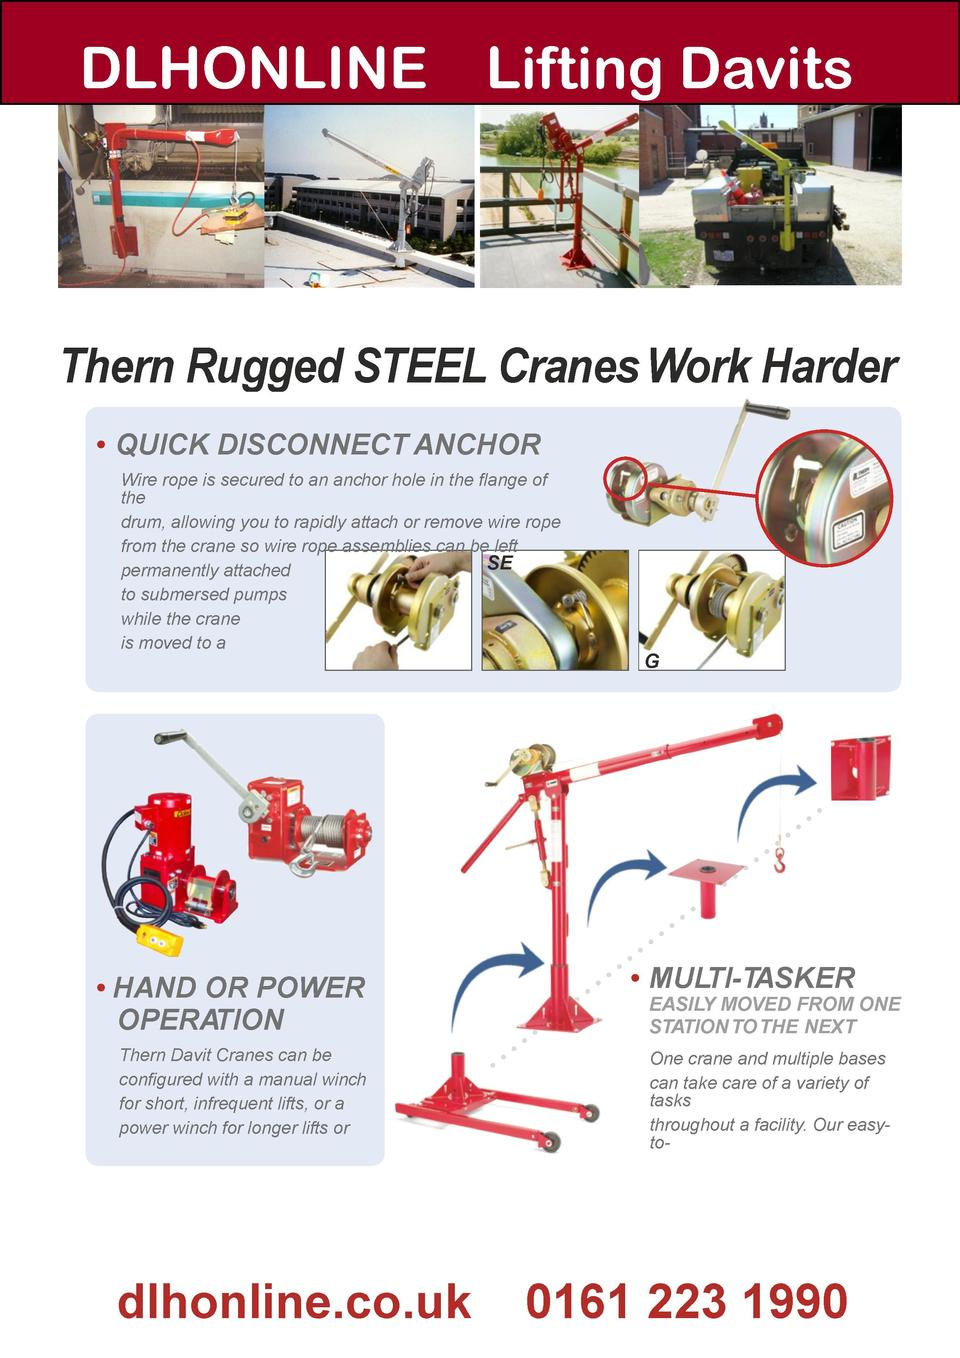 Guide To Lifting Davits Thern Winch Wiring Diagram Dlhonline Rugged Steel Cranes Work Harder Quick Disconnect Anchor Wire Rope Is Secured